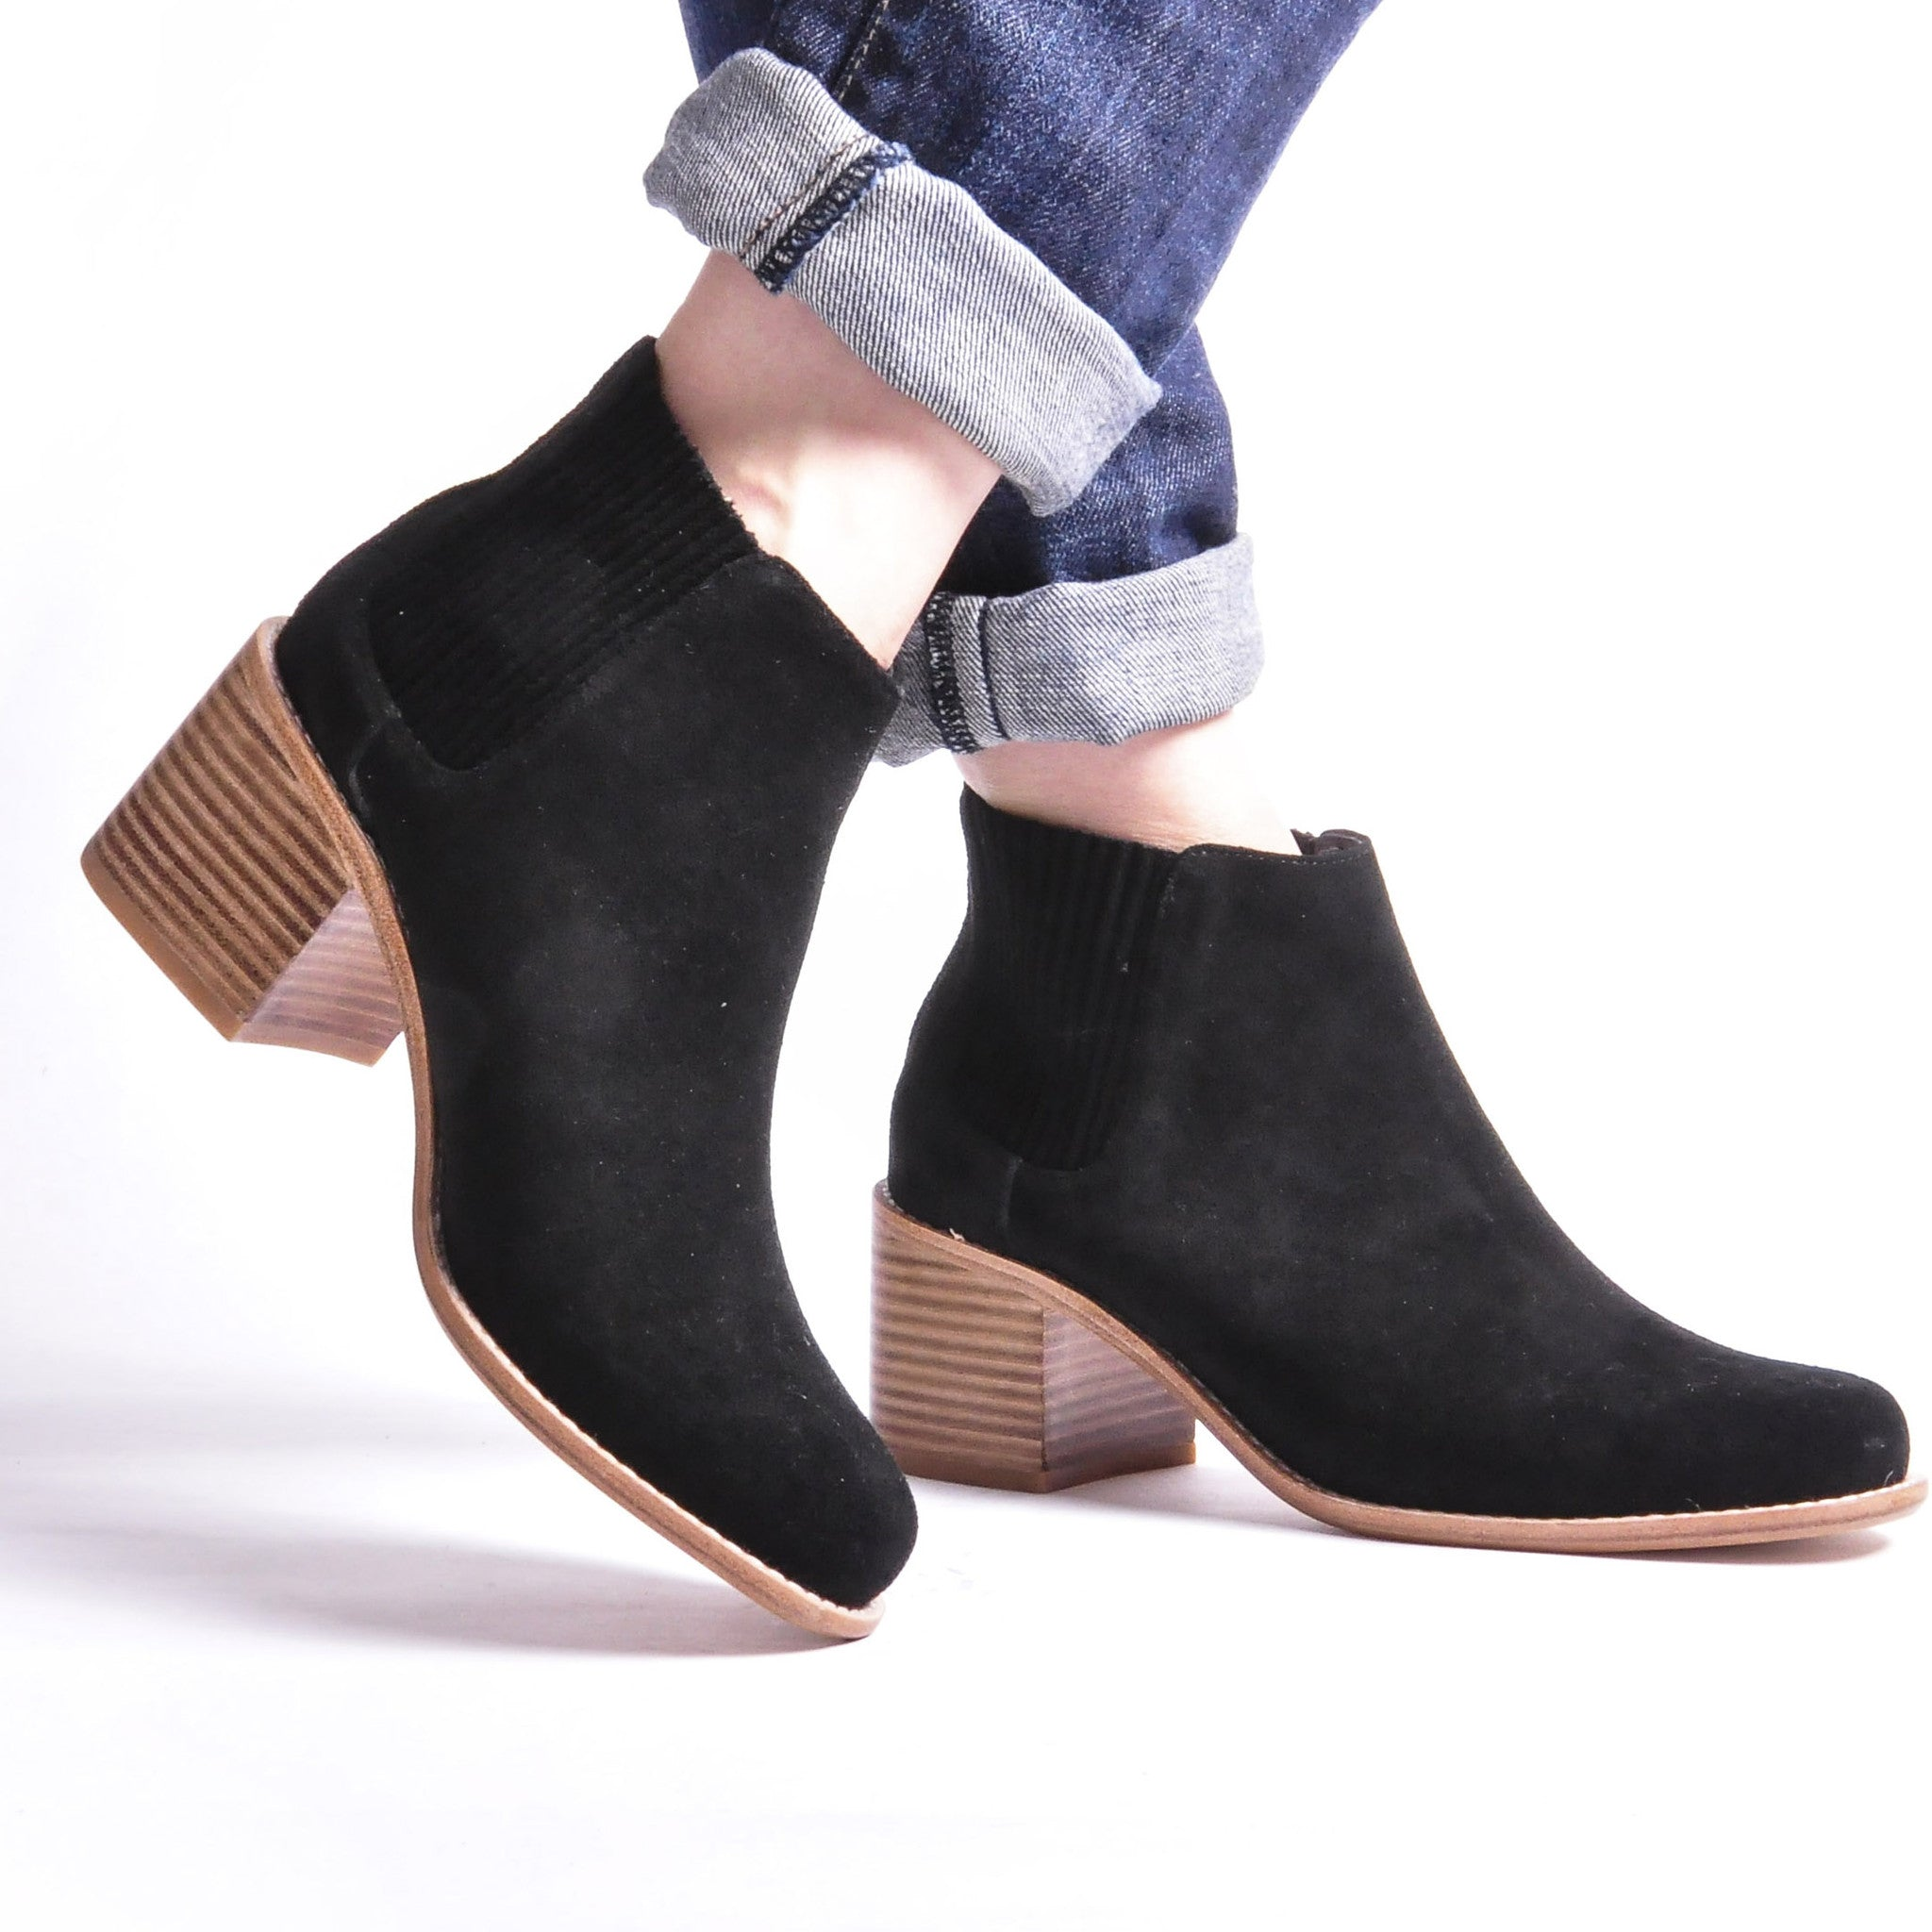 DY486-SUEDE-black-3